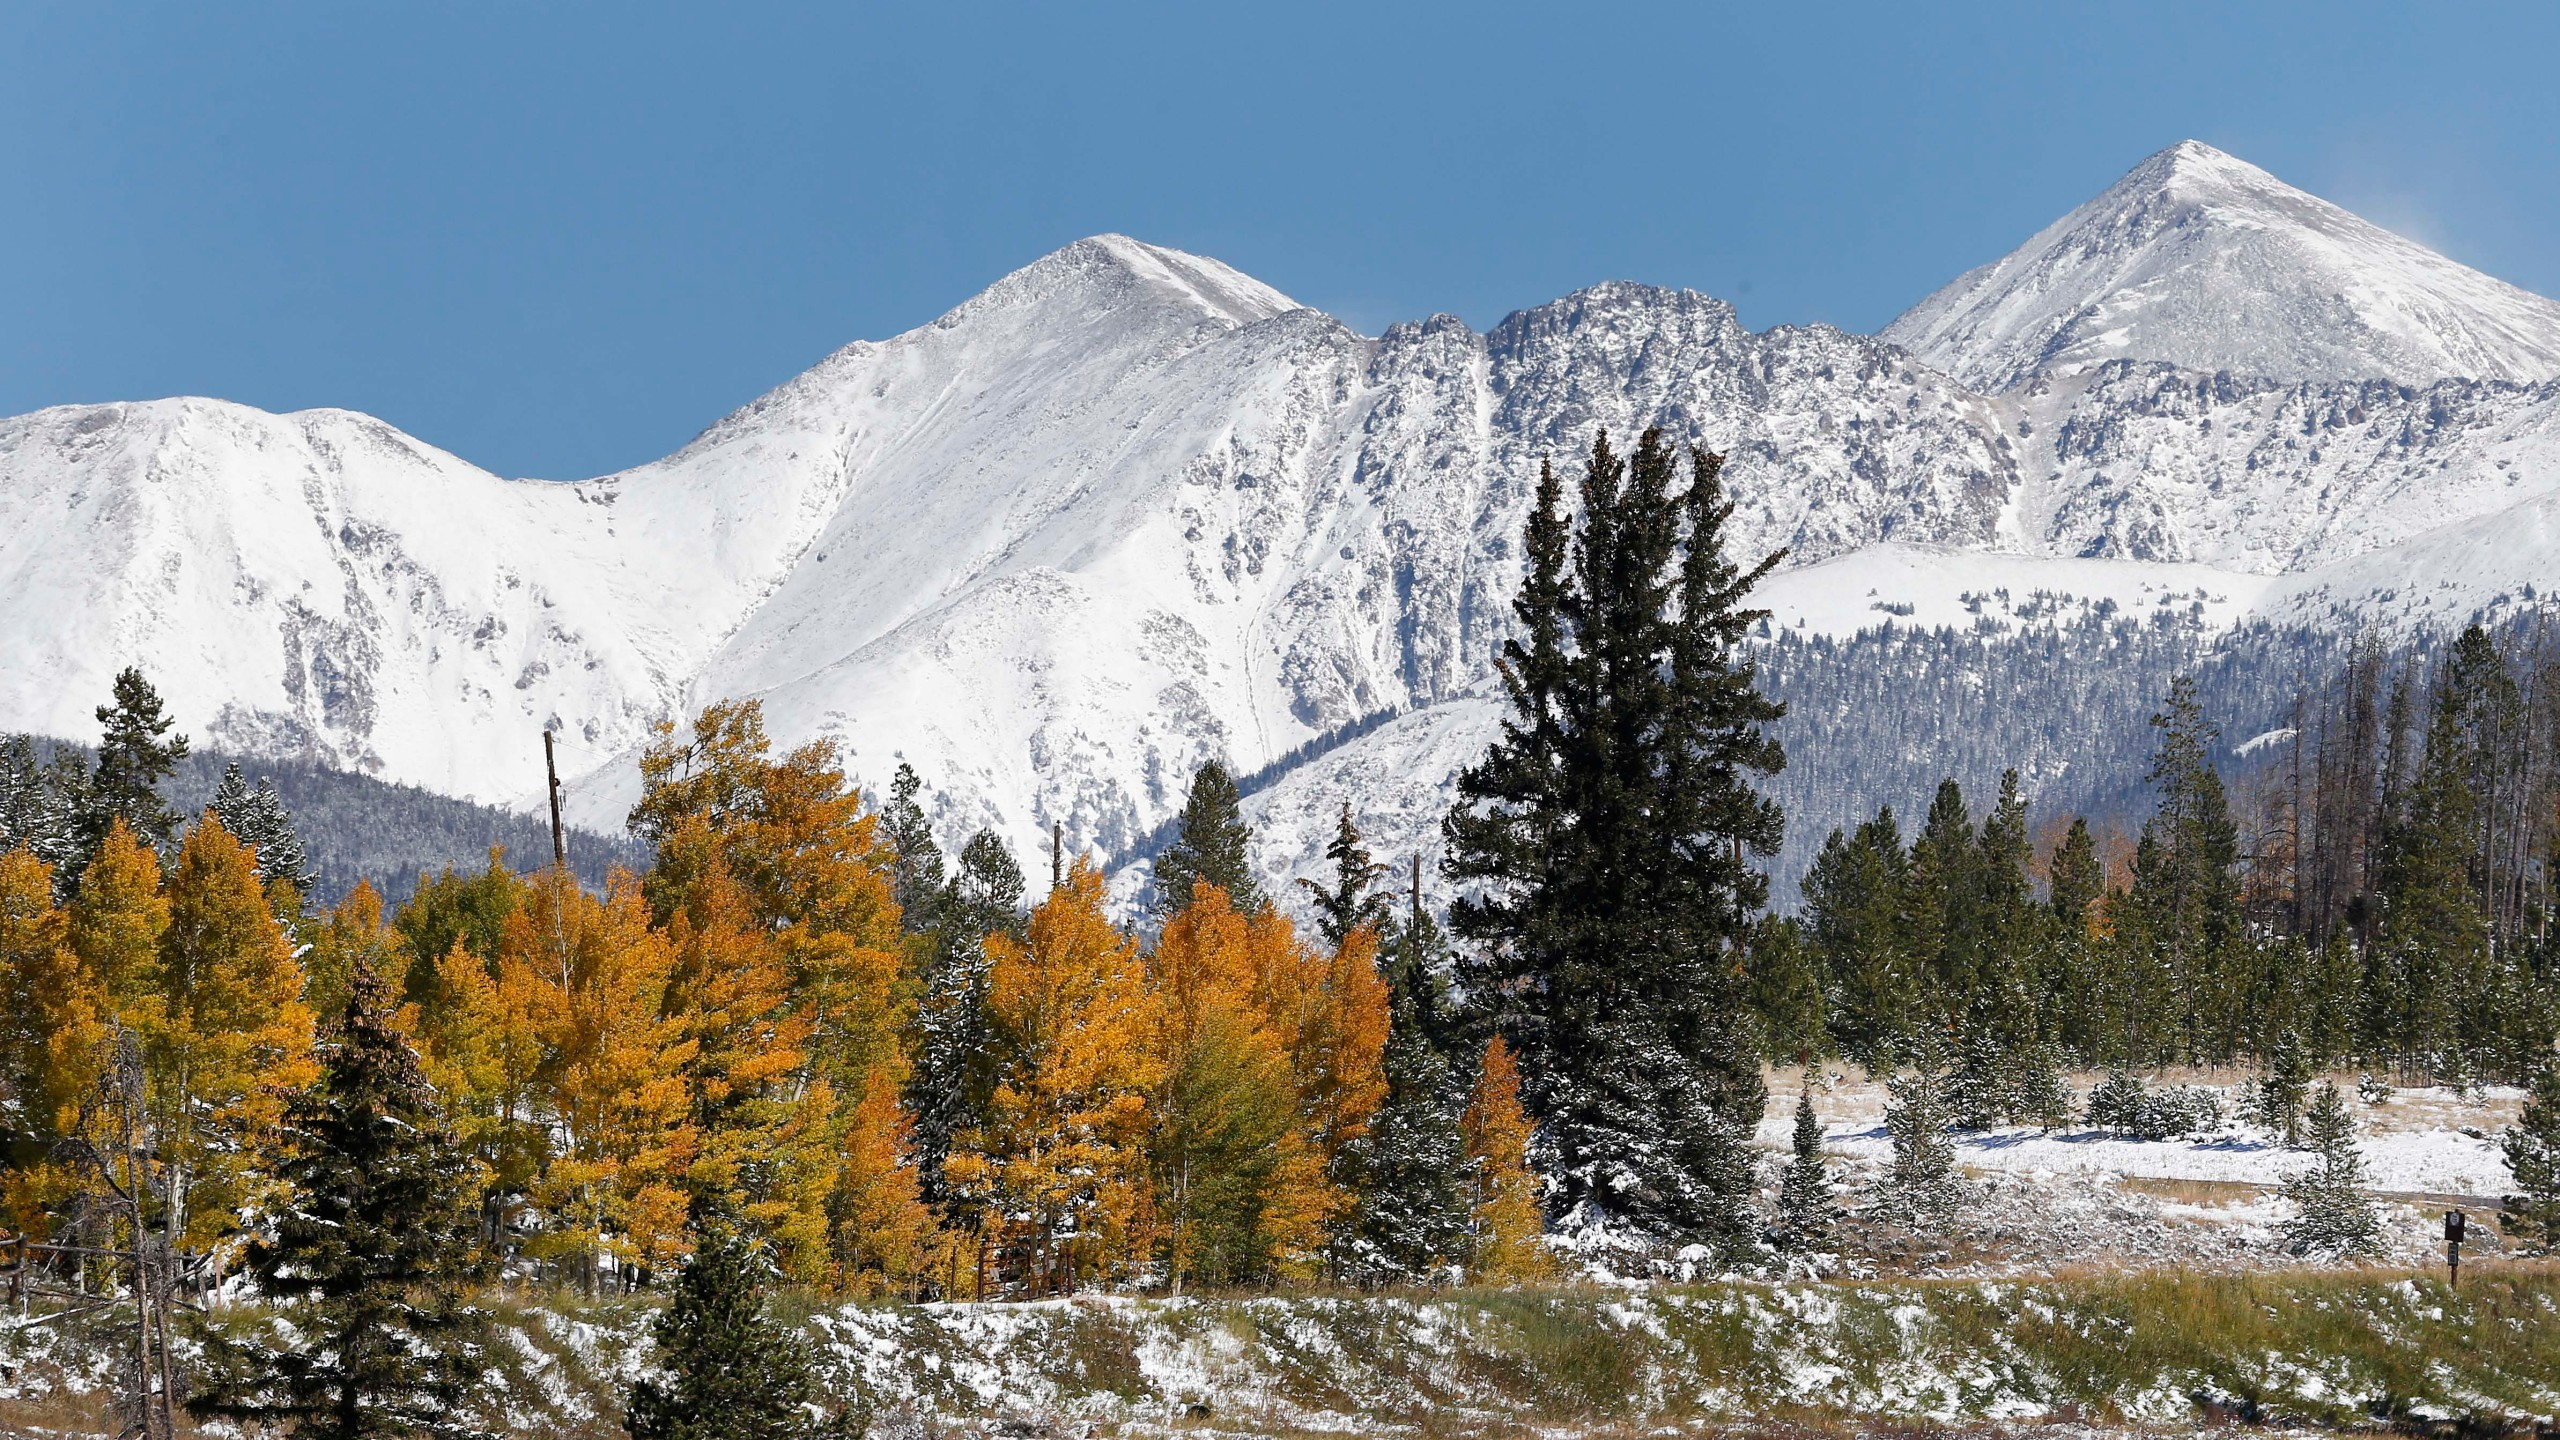 FILE - In this Oct. 5, 2013 file photo, fresh snow covers Torreys Peak, right, and Grizzly Peak, left, east of Frisco, Colo. (AP Photo/Brennan Linsley, file)